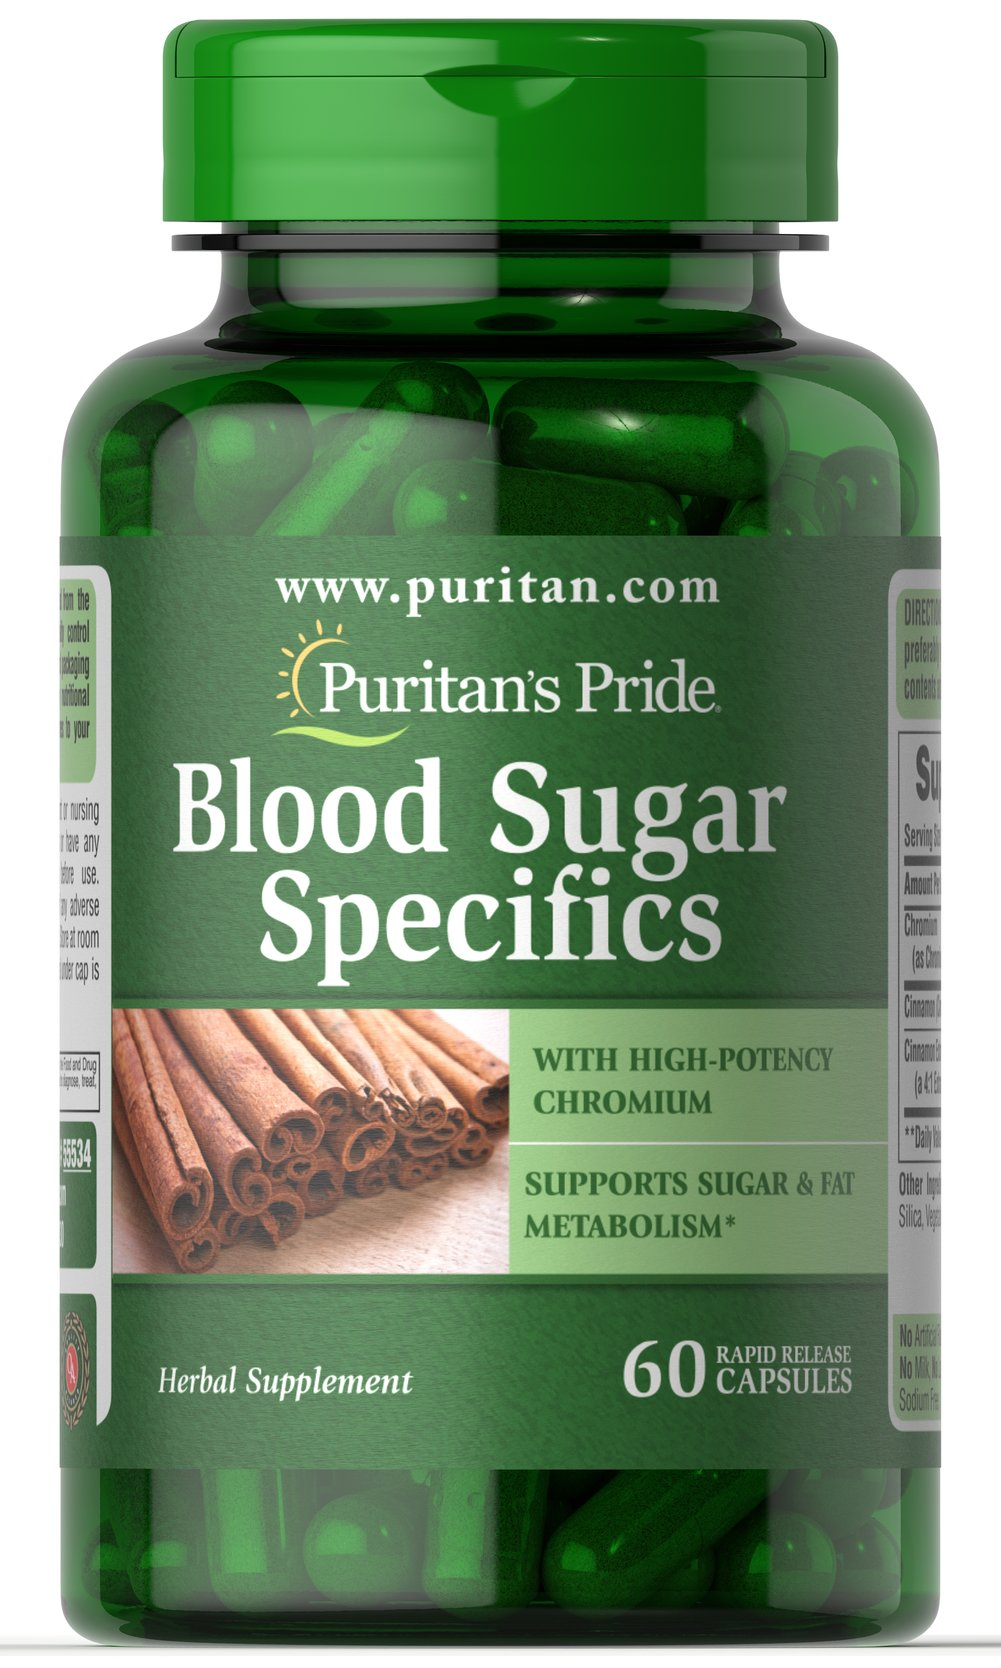 Blood Sugar Specifics with Cinnamon & Chromium Thumbnail Alternate Bottle View